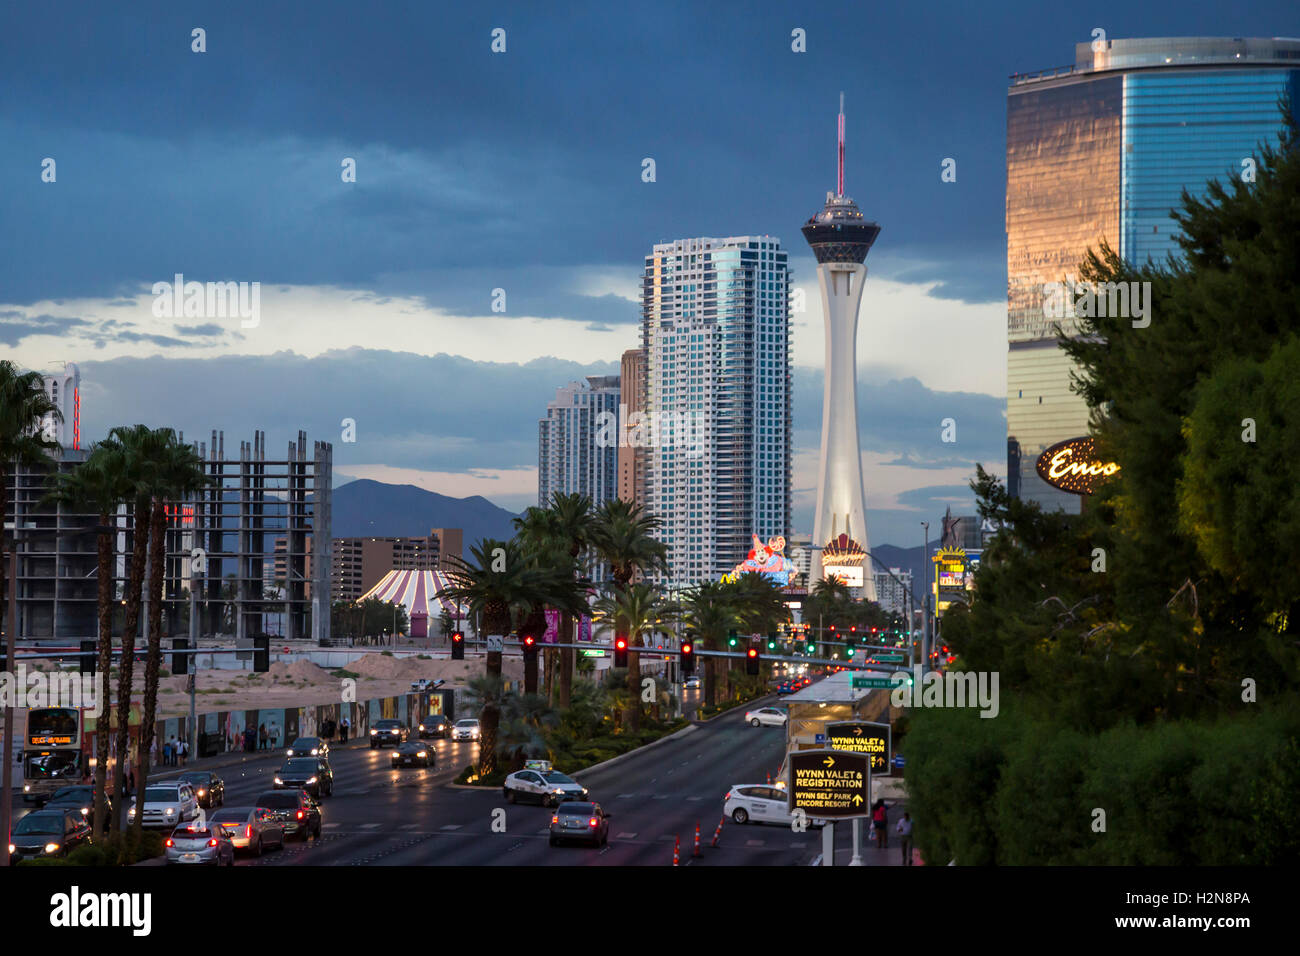 Las Vegas, Nevada - The north end of the Las Vegas Strip, including the Stratosphere observation tower. - Stock Image